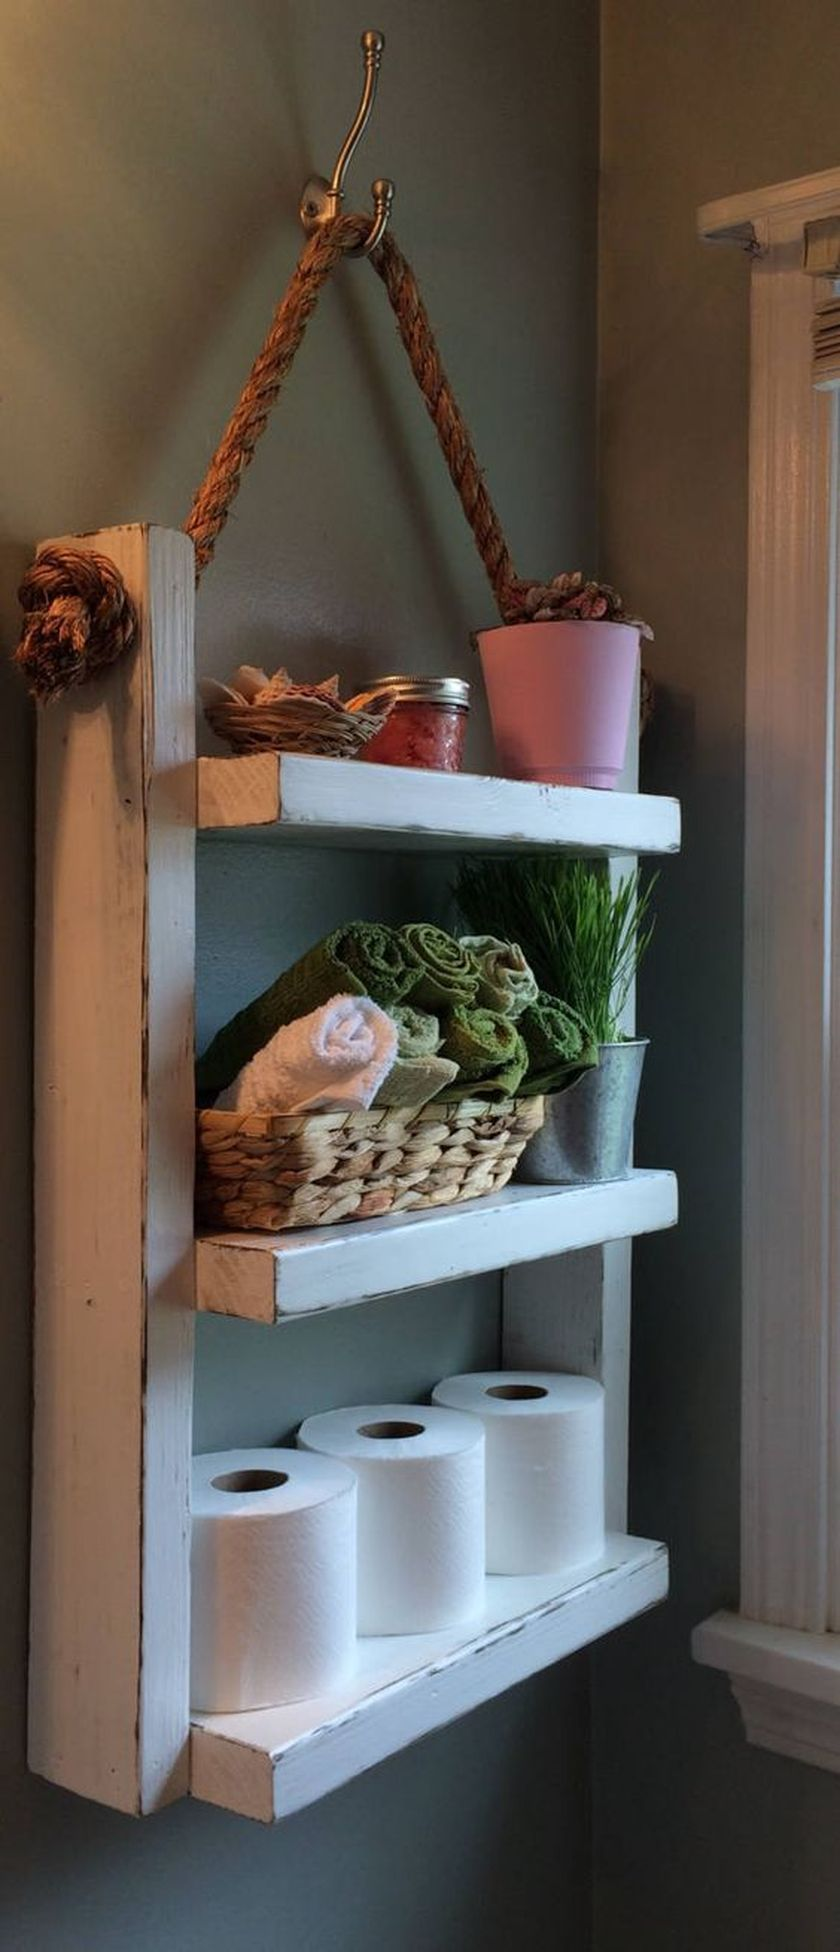 Comely Rustic Country Bathroom Shelves Ideas That You Must Try Rustic Country Bathroom Shelves Ideas That You Must Try Shelf Bathroom Shelf Ideas Diy Bathroom Shelf Ideas Target